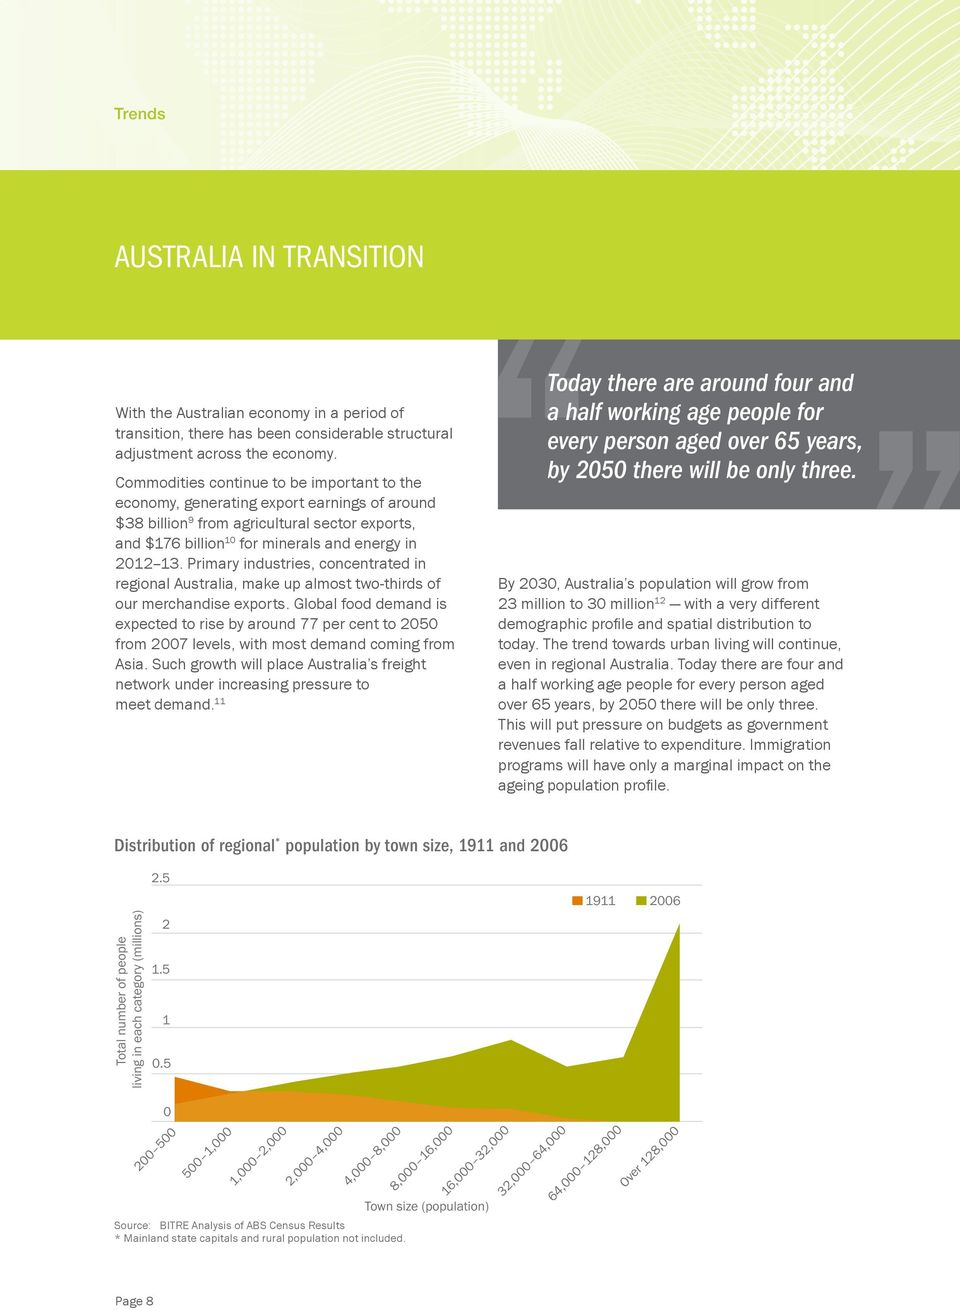 Primary industries, concentrated in regional Australia, make up almost two-thirds of our merchandise exports.